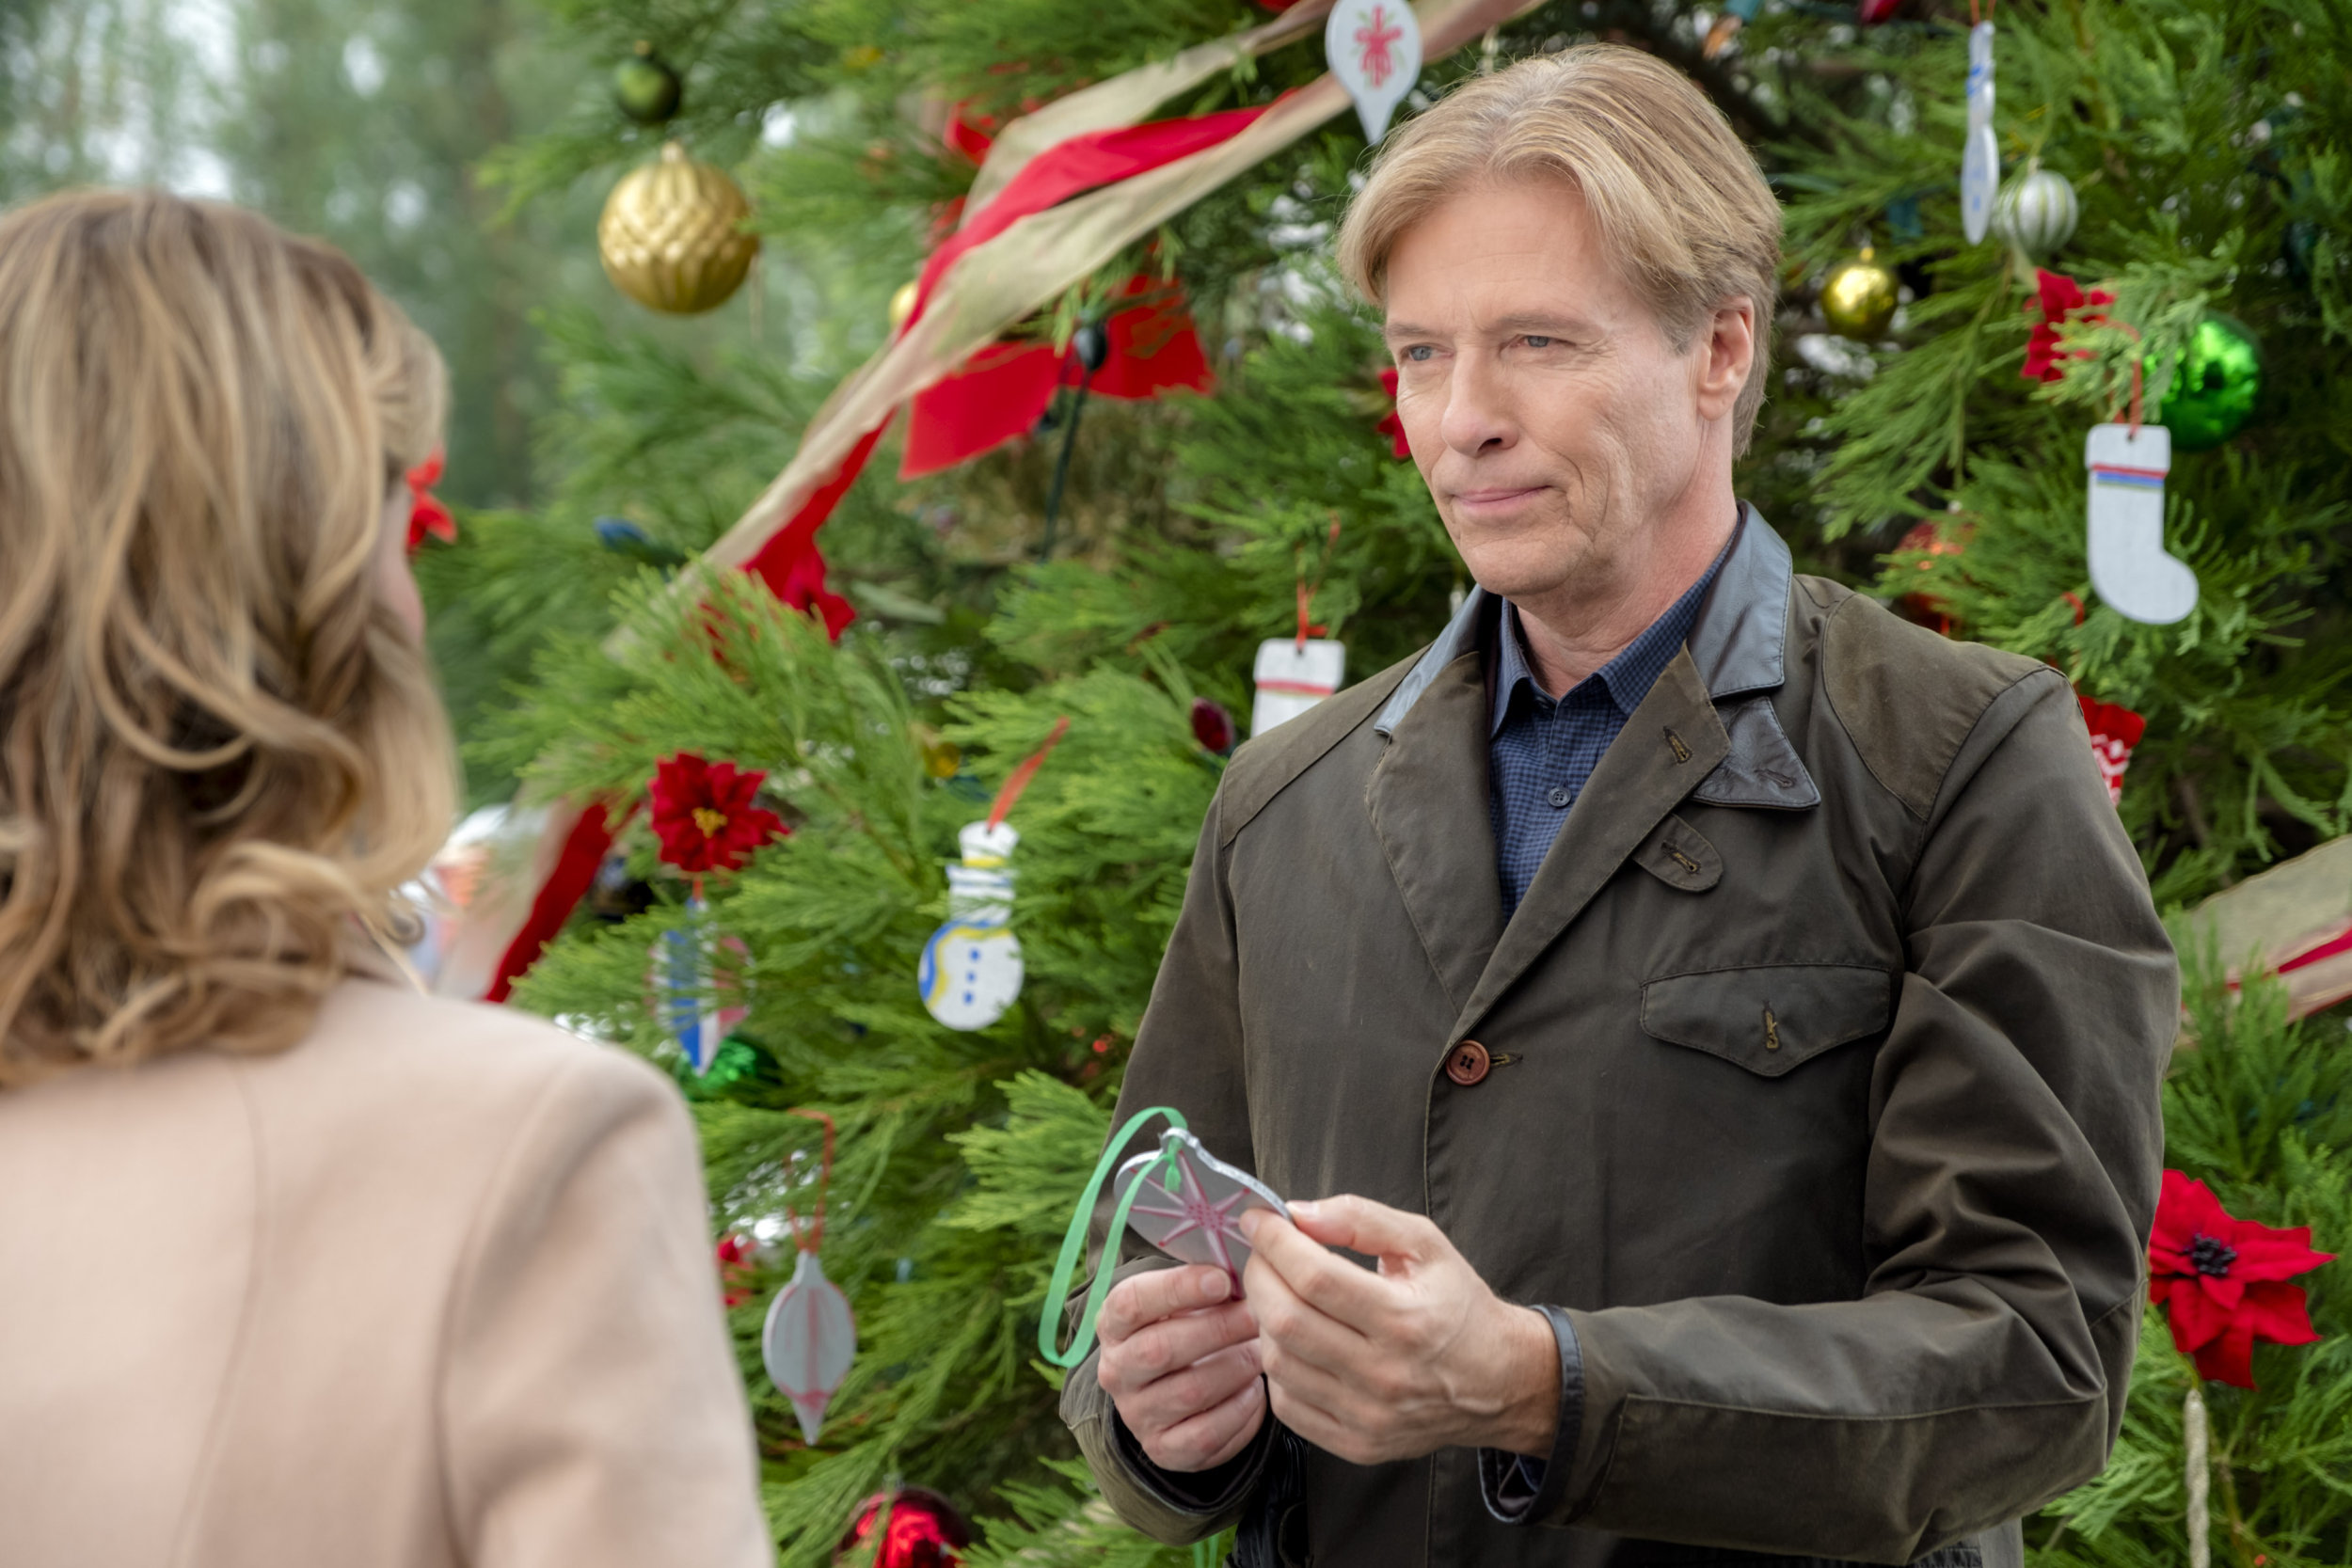 When Calls The Heart Christmas.Cast Interviews Jack Wagner S Christmas Traditions When